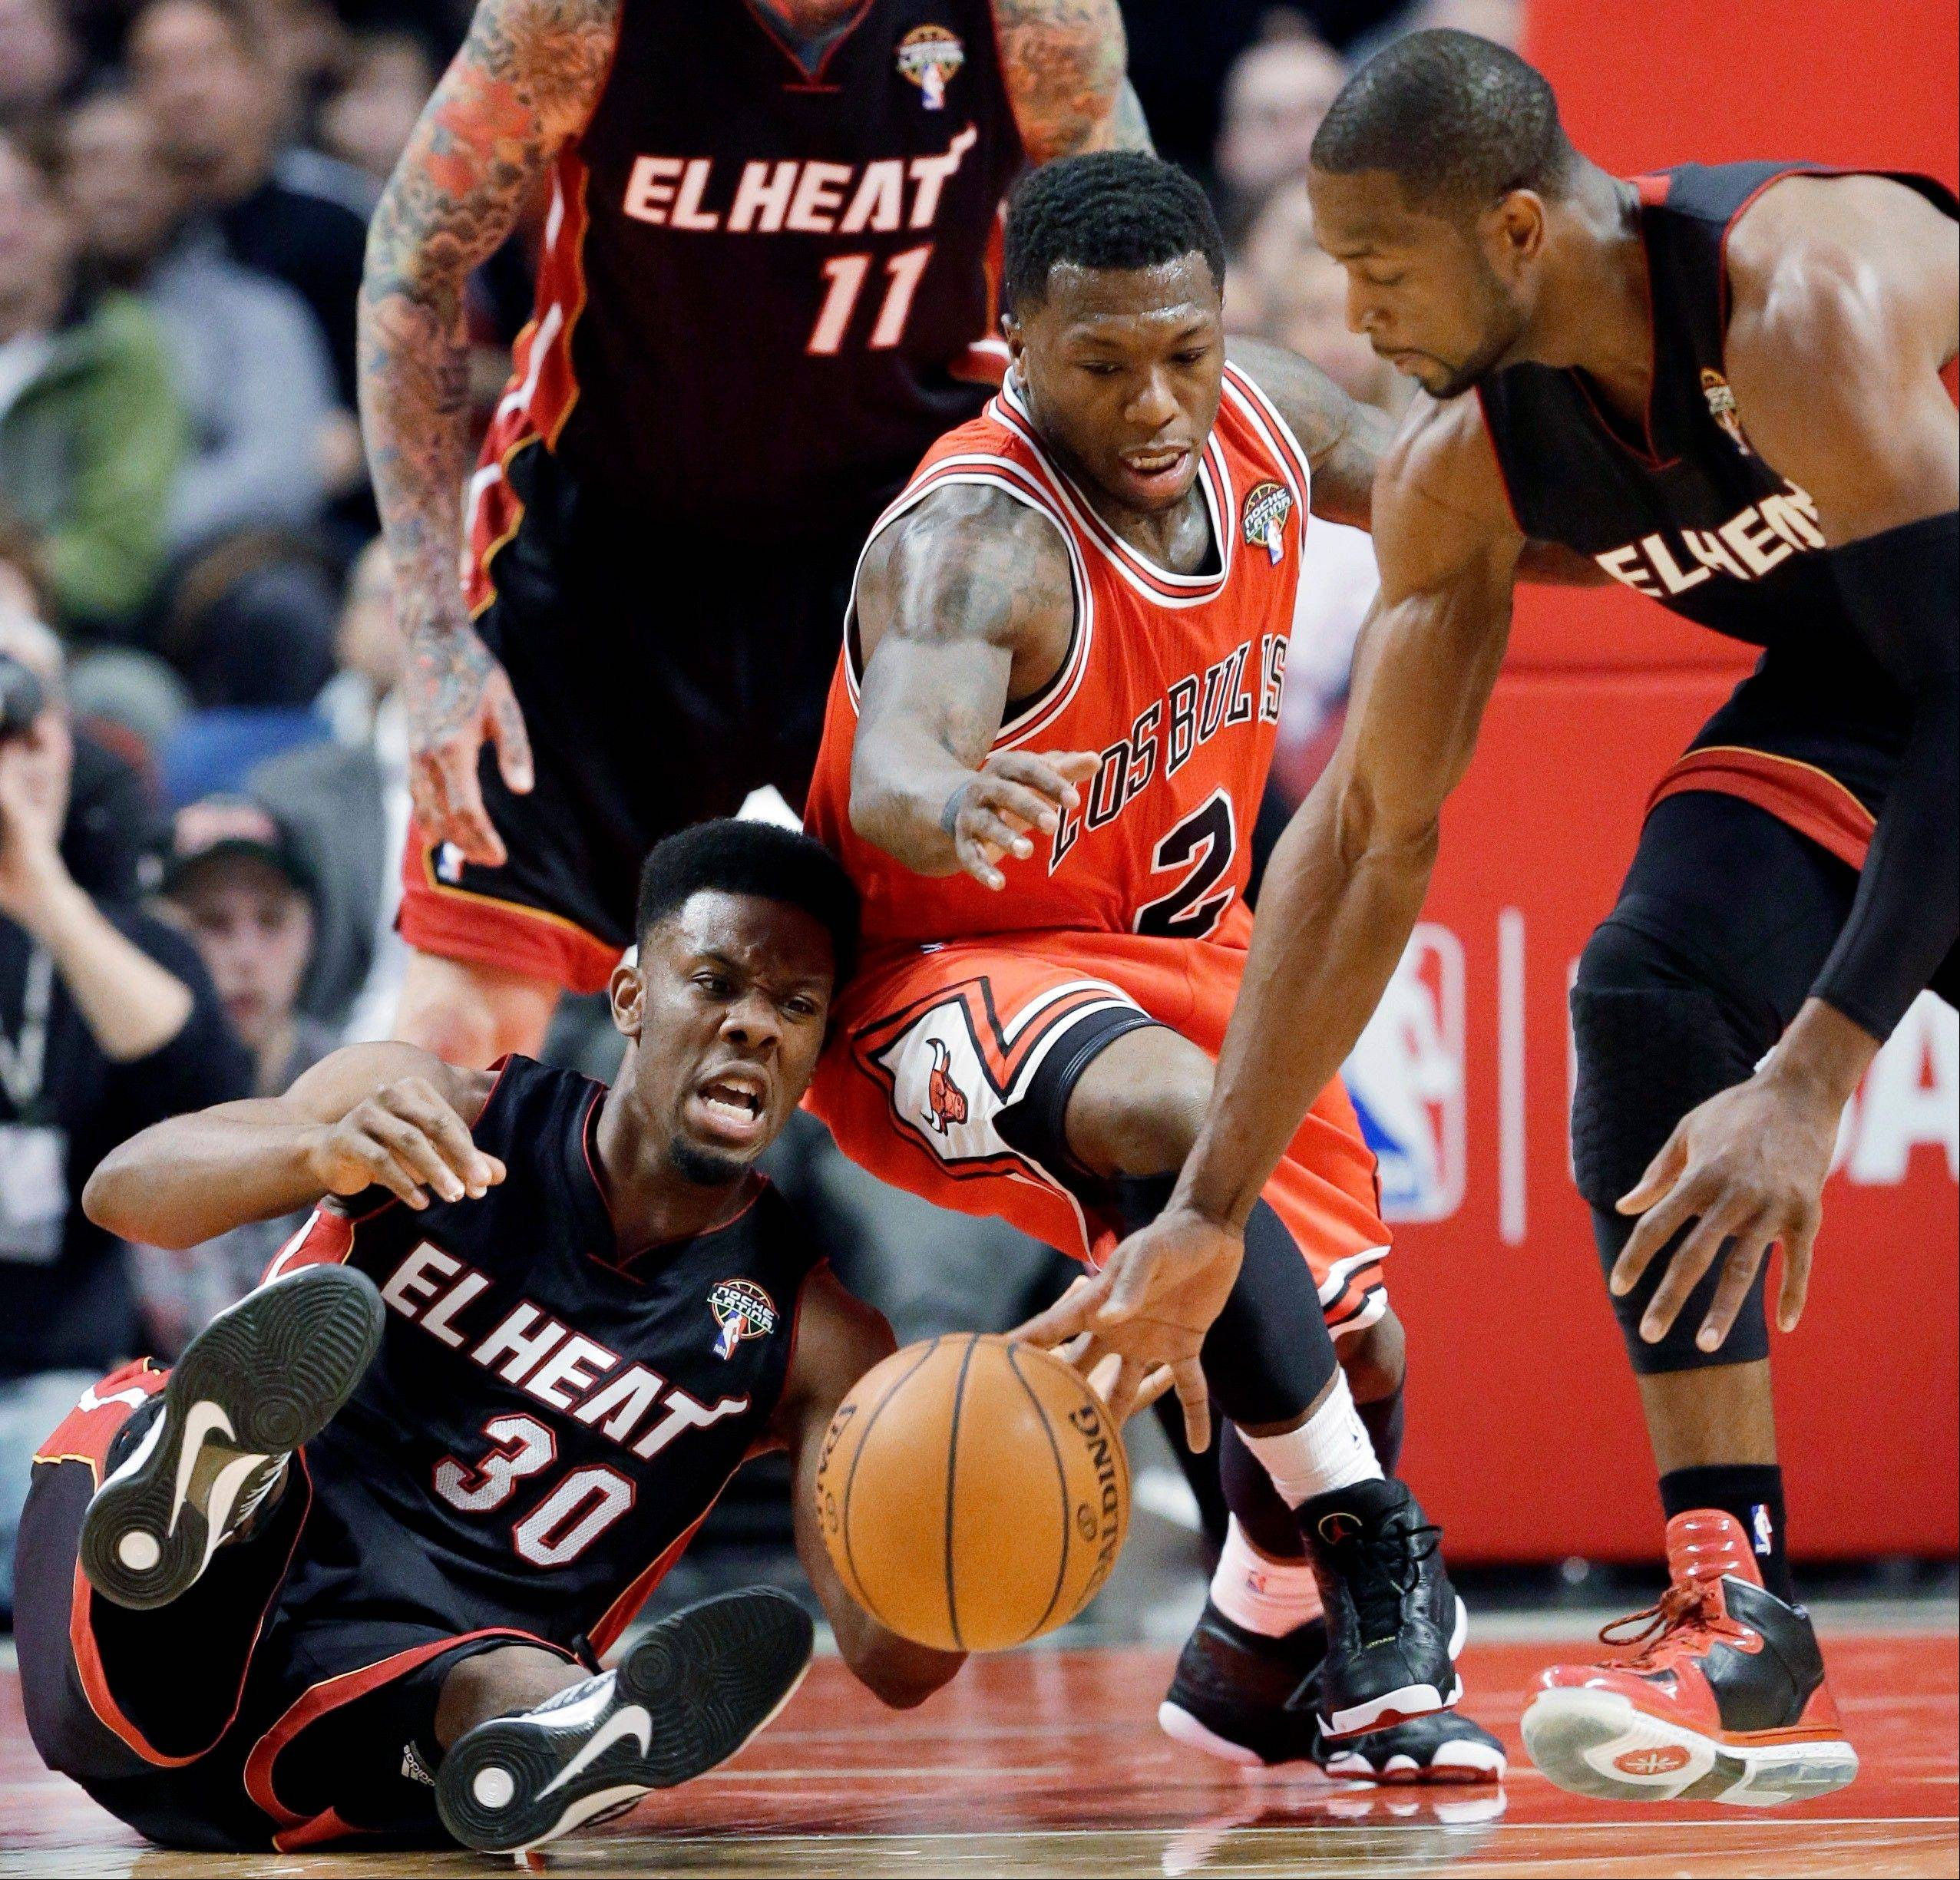 Miami Heat guards Norris Cole (30) and Dwyane Wade, right, scramble for a loose ball against Chicago Bulls guard Nate Robinson Wednesday night at the United Center.